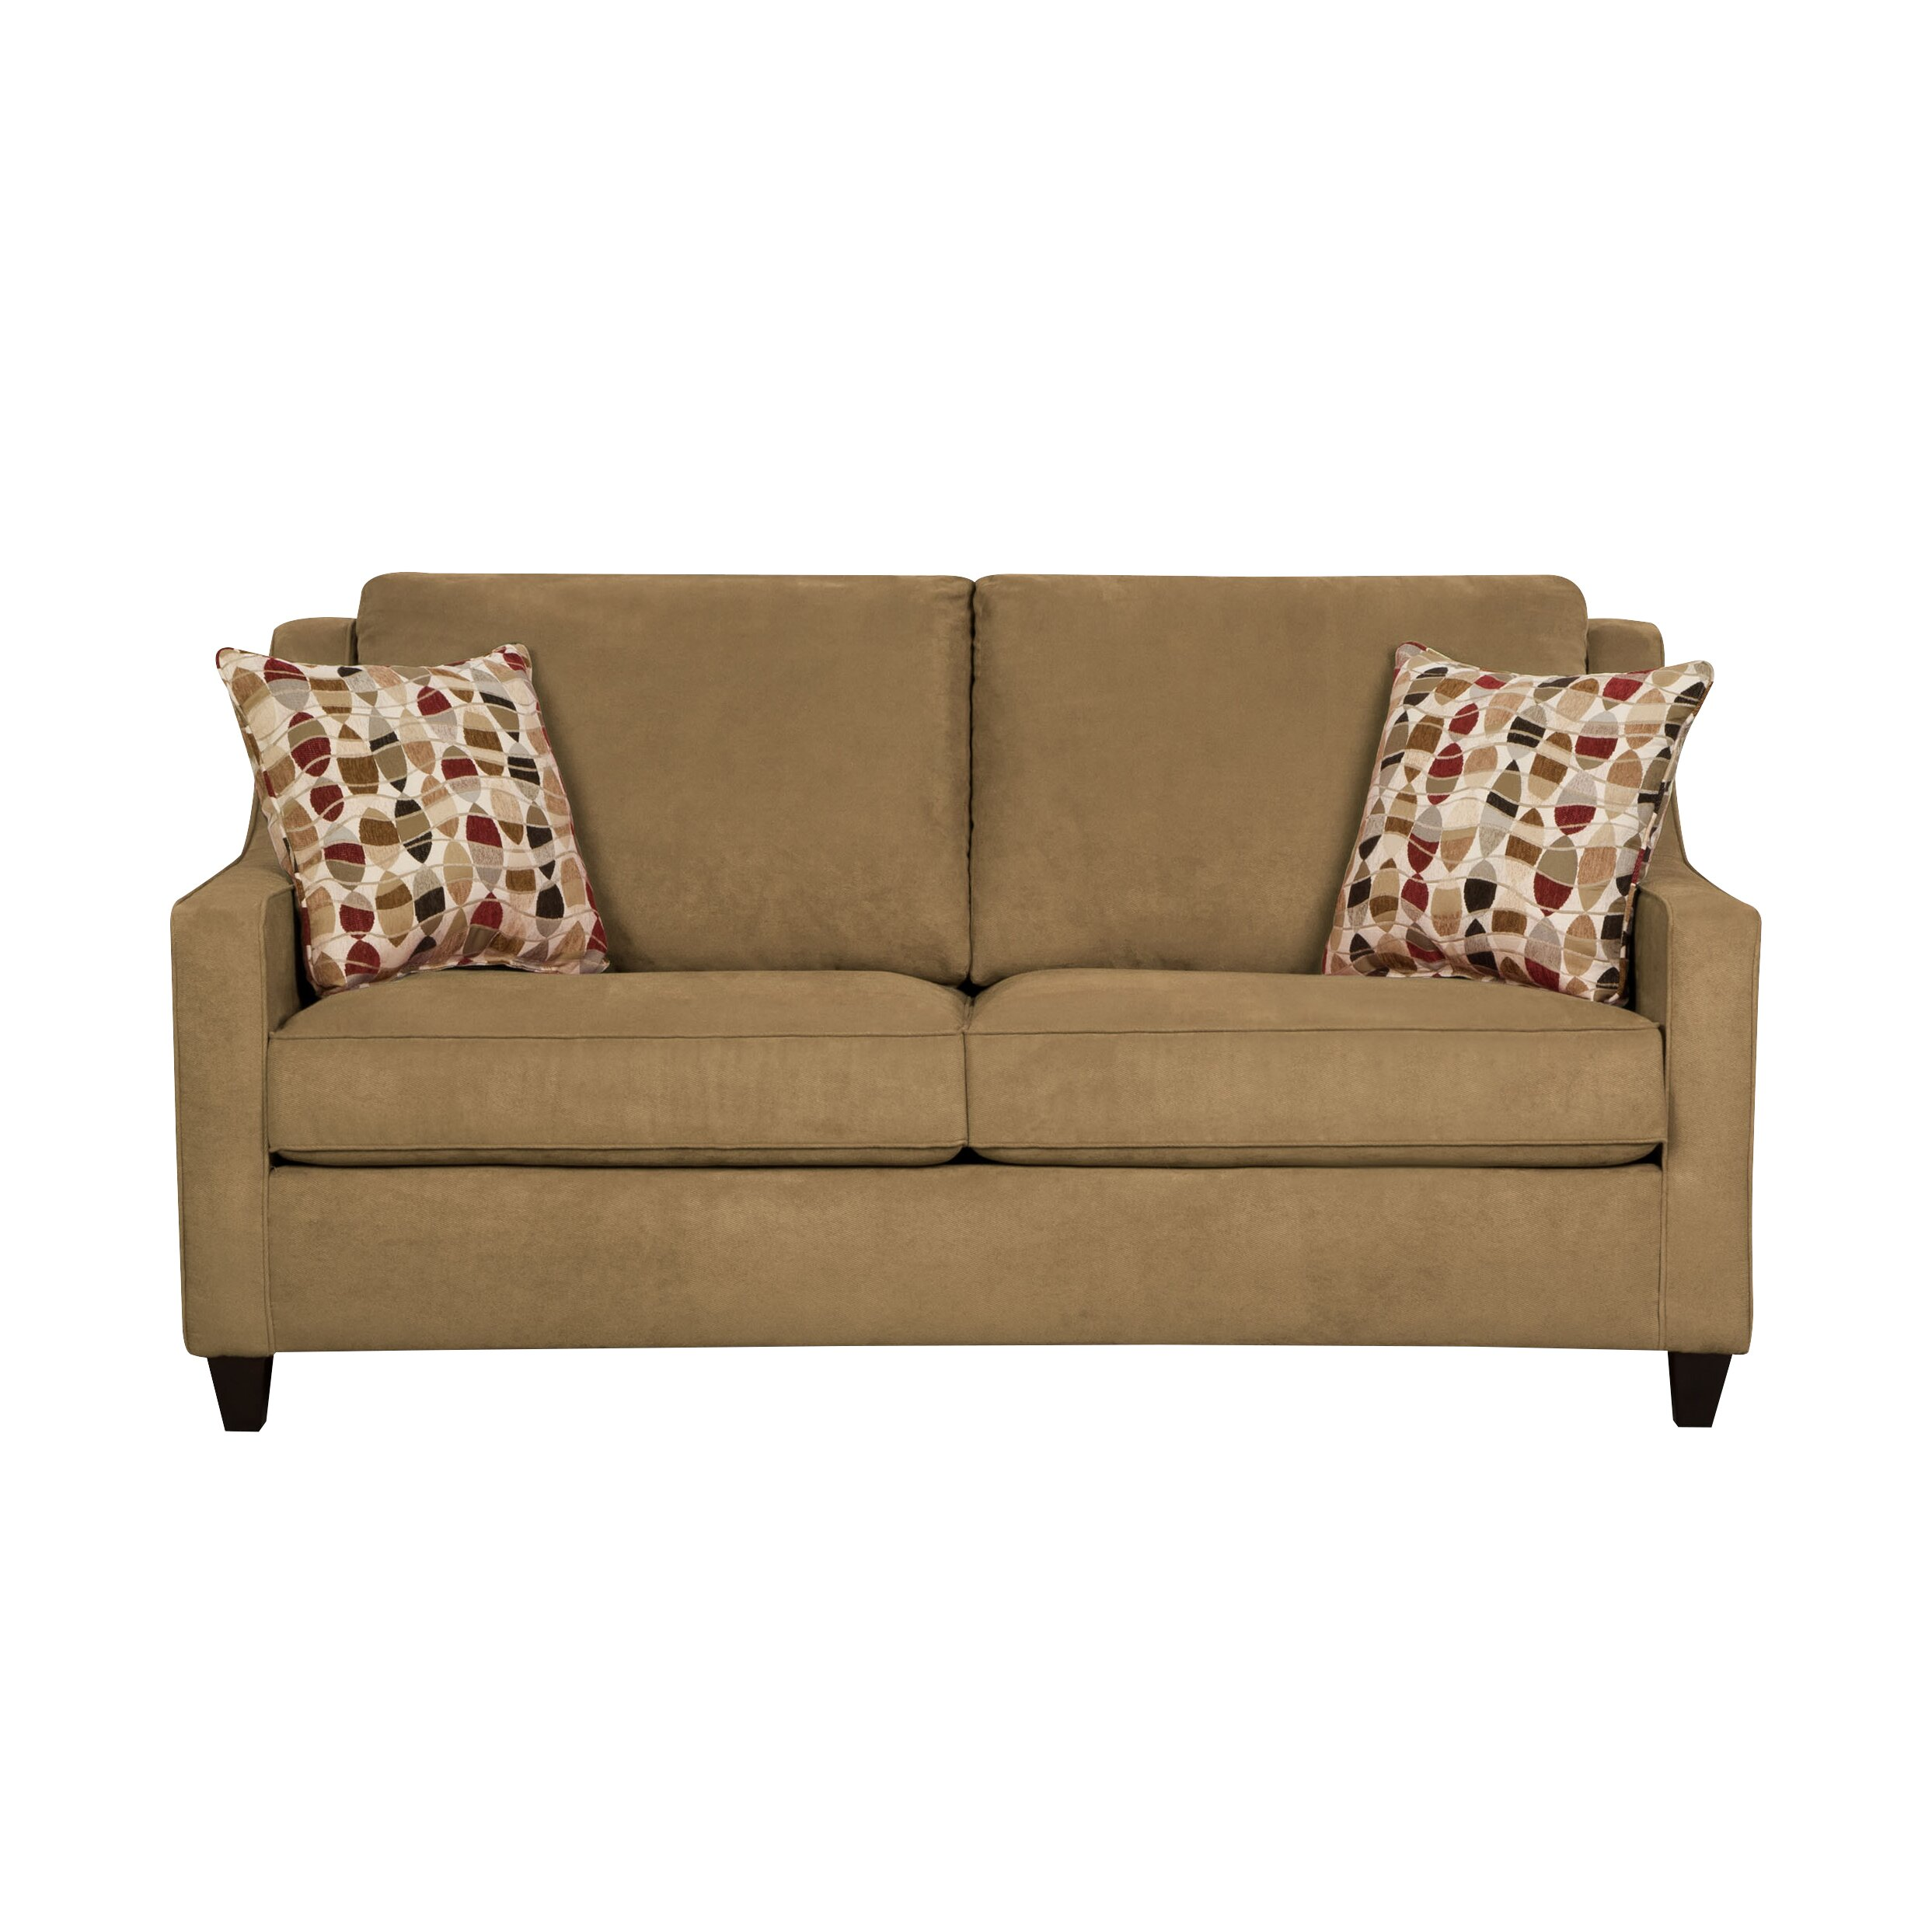 Simmons Upholstery Twillo Twin Sleeper Sofa Reviews Wayfair